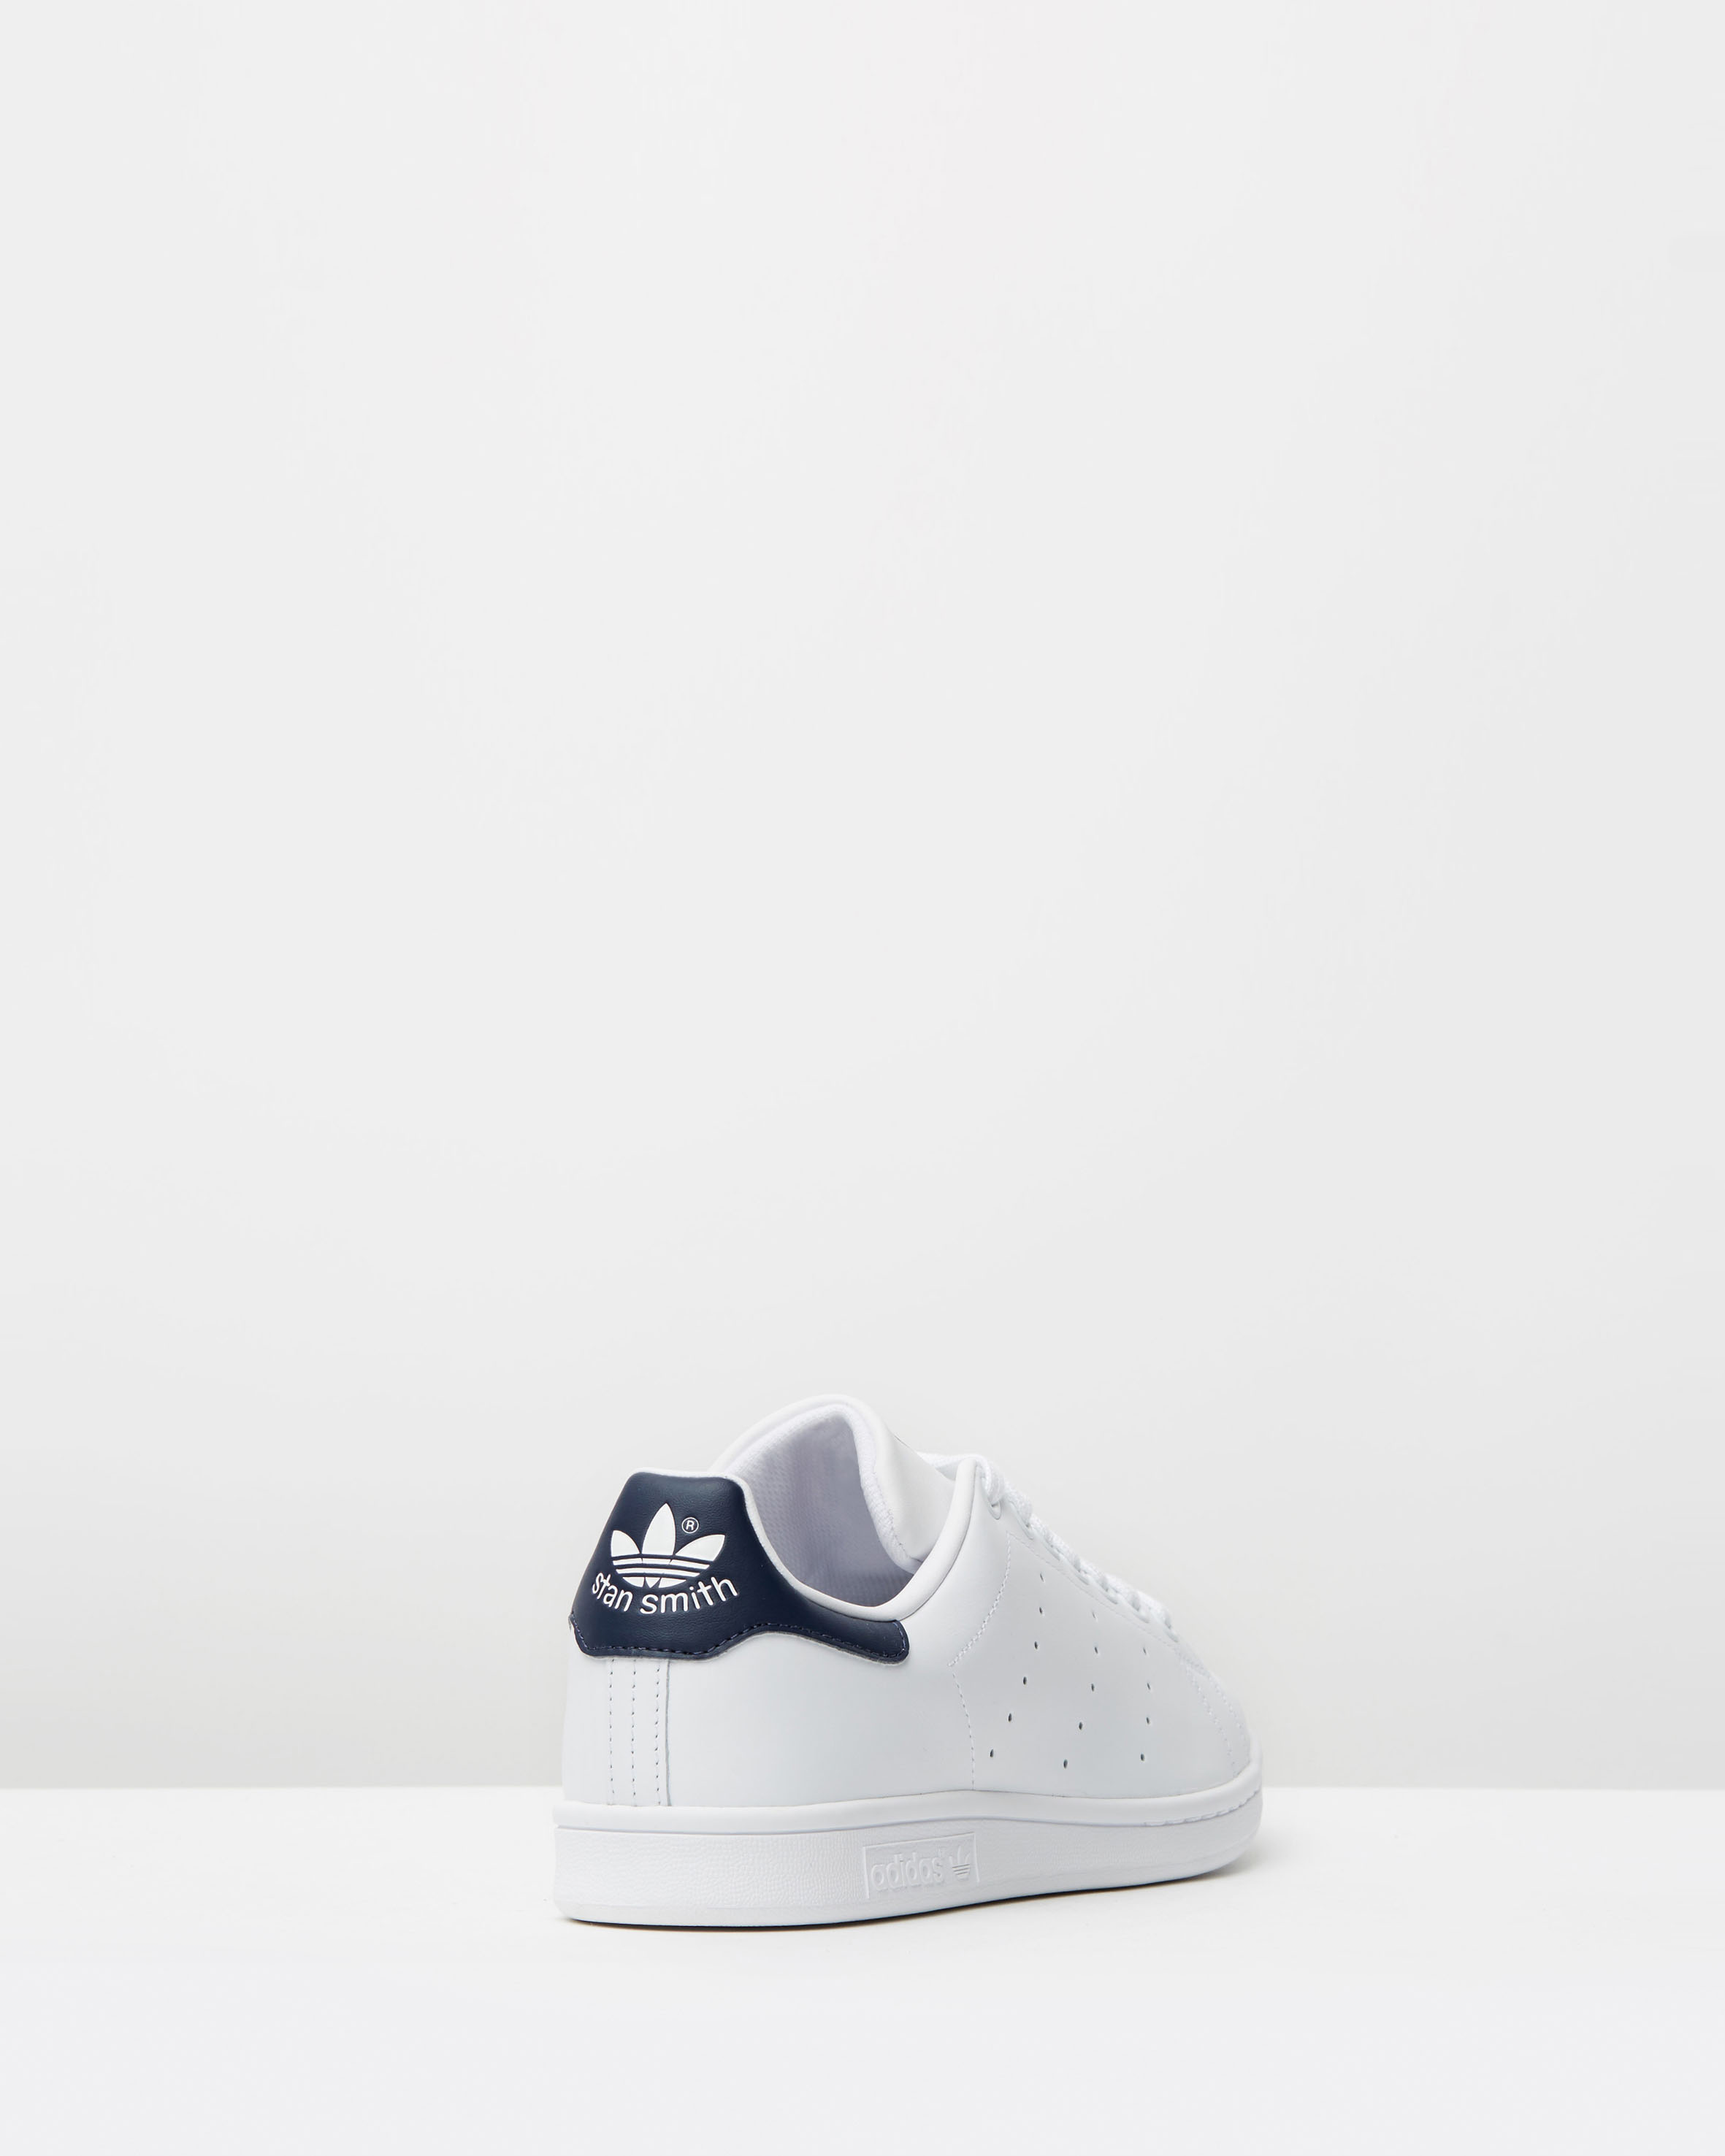 6015c0f11ec Adidas Men's Stan Smith Navy | Sneaker Store - 95Gallery.com